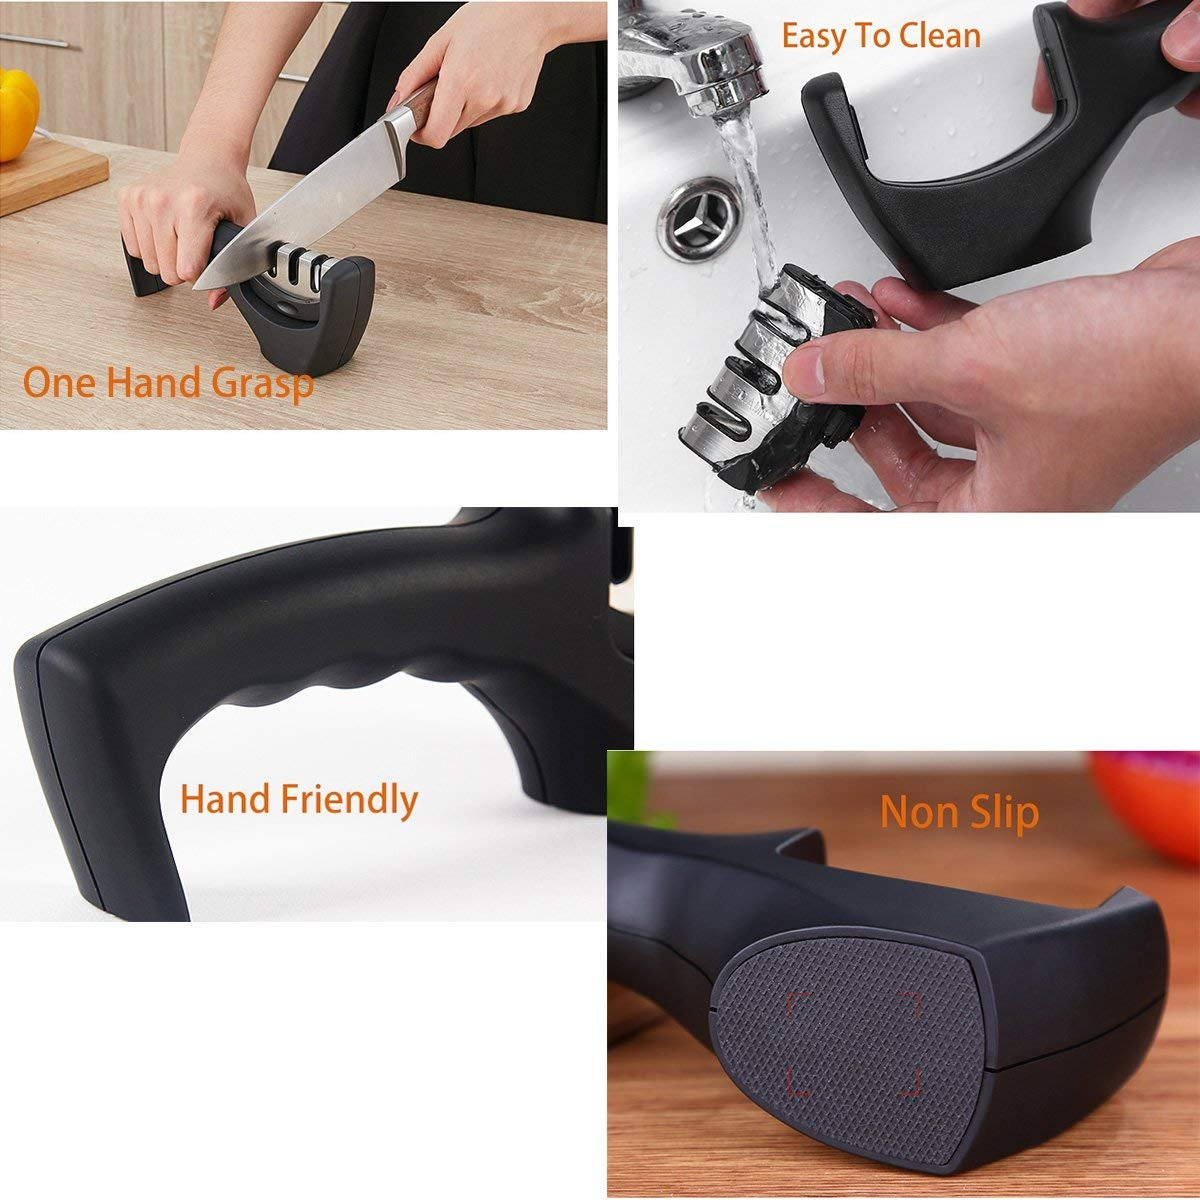 Knife Sharpener- Professional Kitchen Knife Sharpener 3 Stage Steel Diamond Ceramic Coated Kitchen Sharpening Tool with Cut Resistant Glove - Non-slip Base Chef Knife Sharpening Kit Easy to Control by HKSH (Image #4)